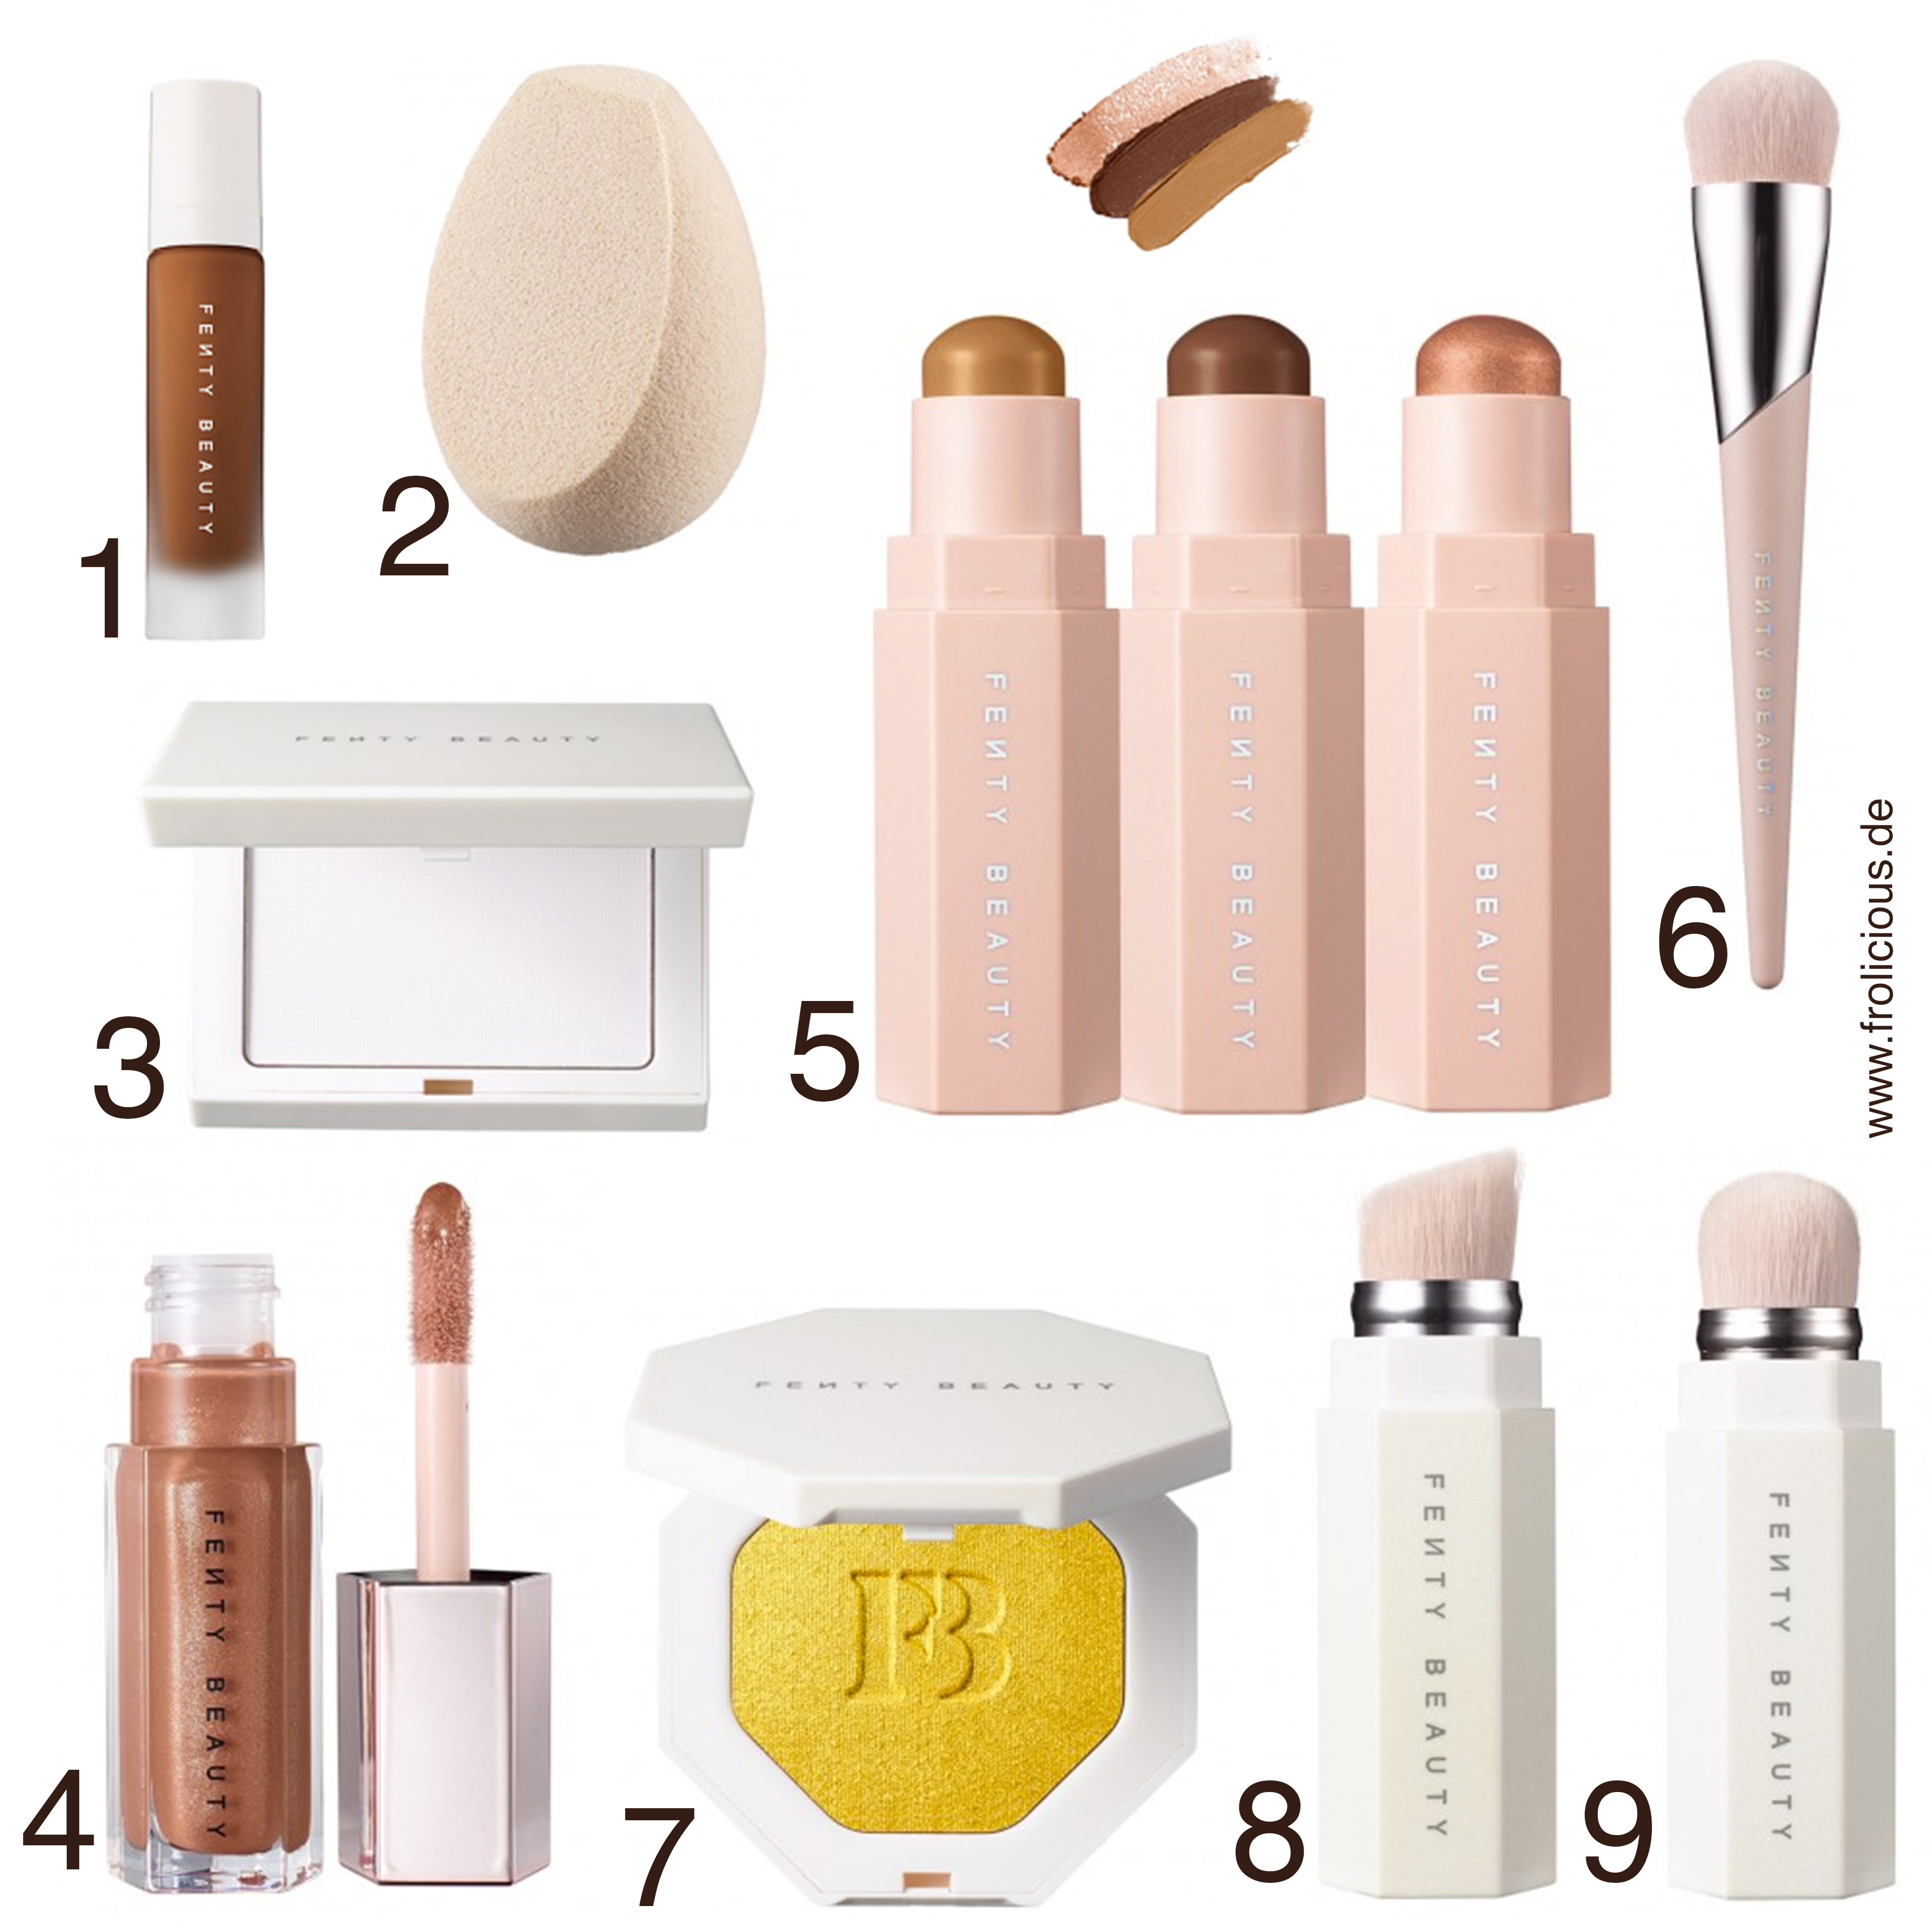 First Impression Of The Makeup Line Fenty Beauty By Rihanna